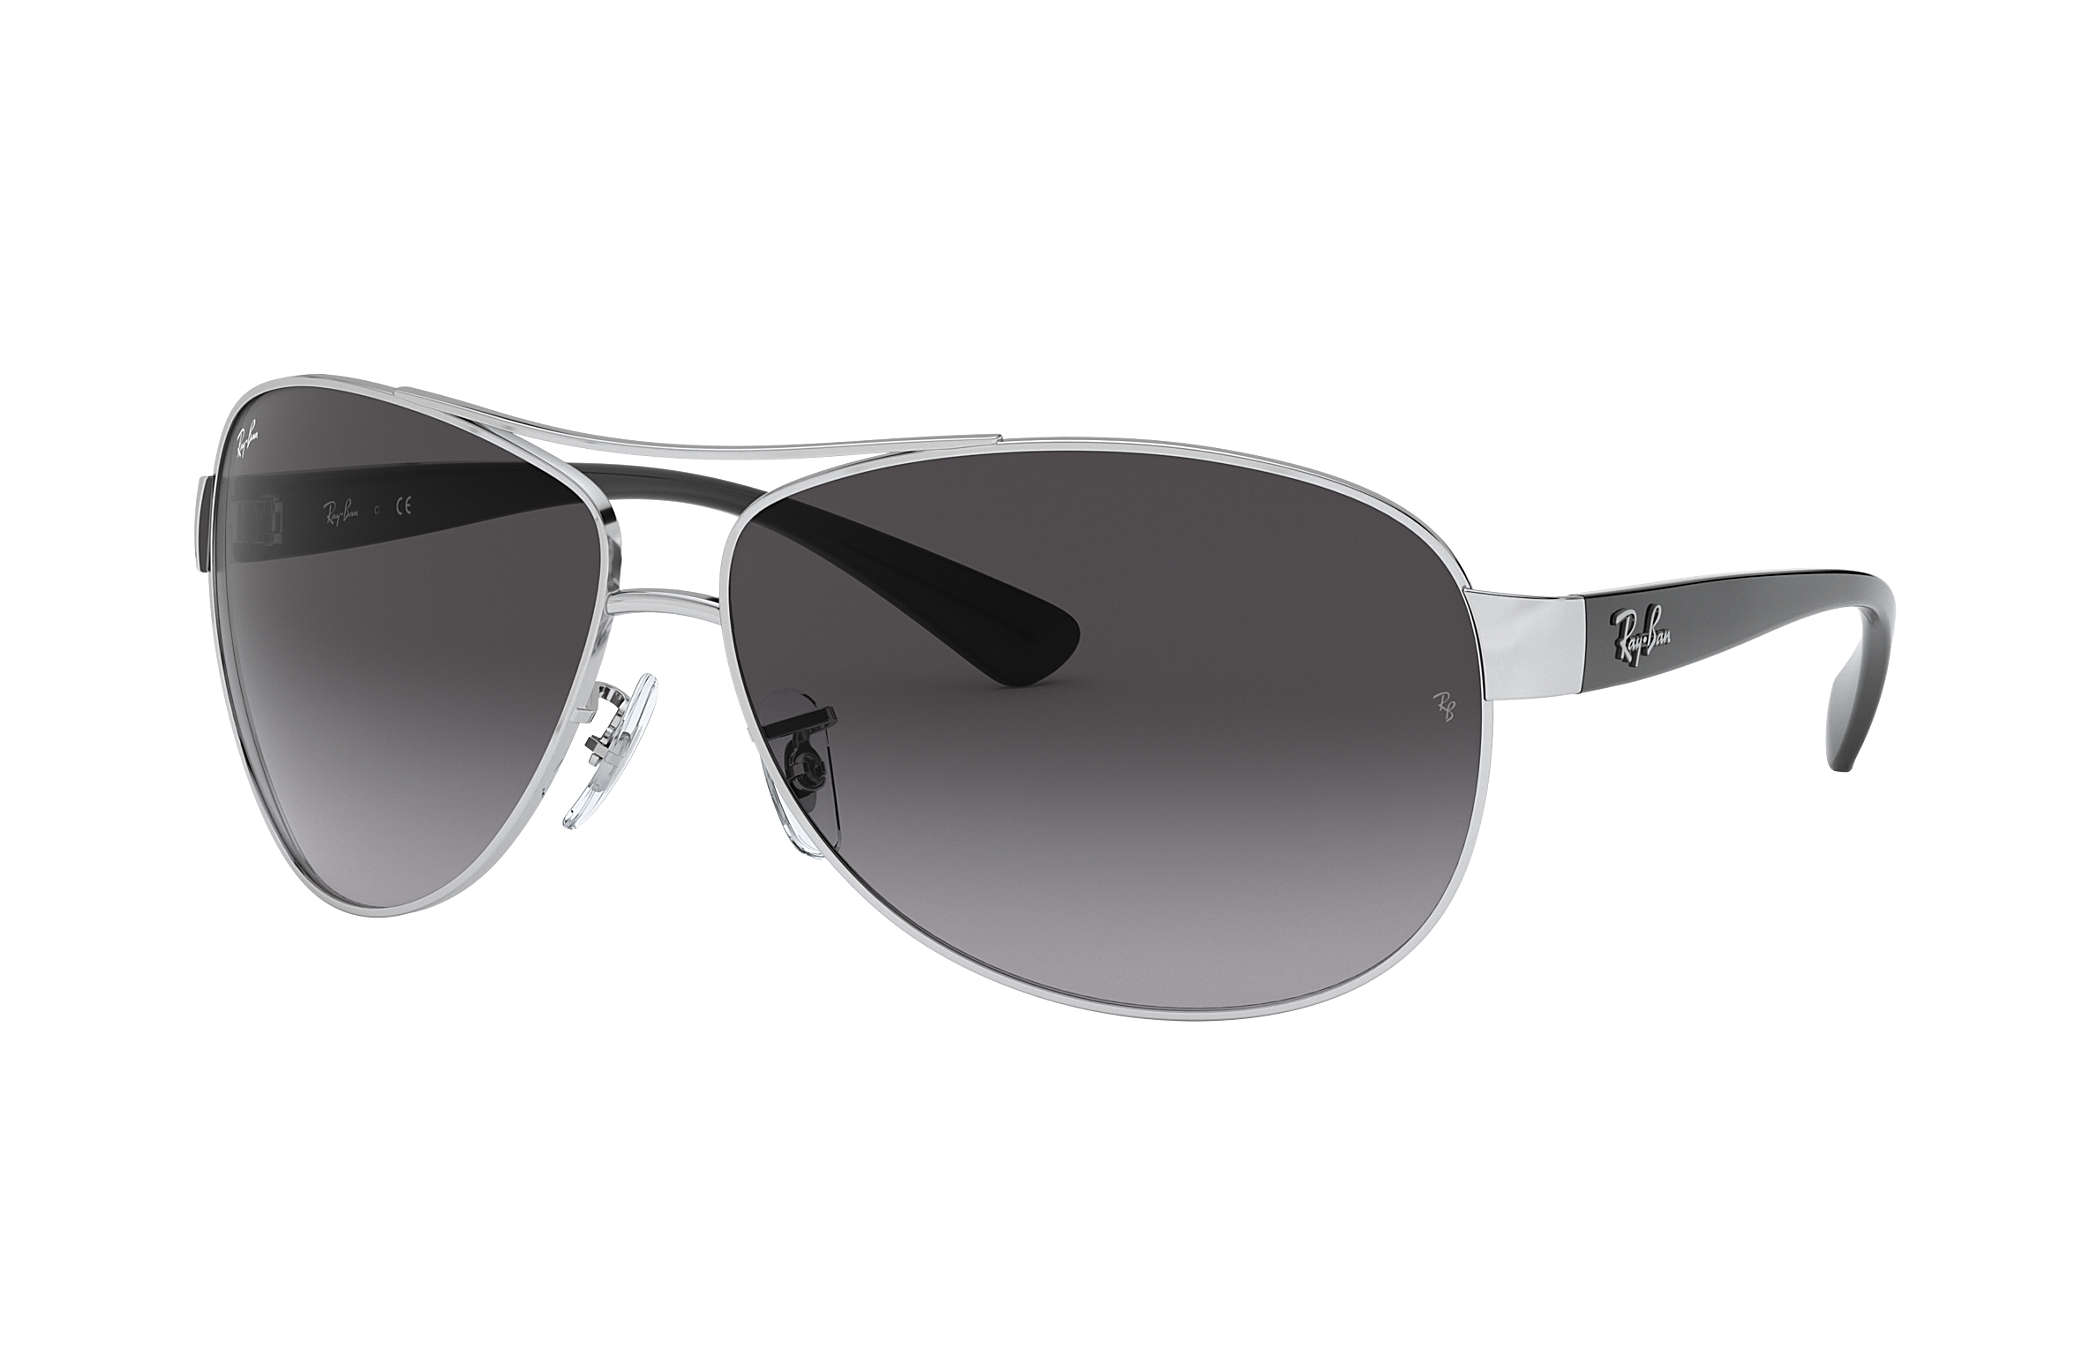 7b4b9a91c9 Ray-Ban RB3386 Argent - Métal - Verres Gris - 0RB3386003/8G67 | Ray ...